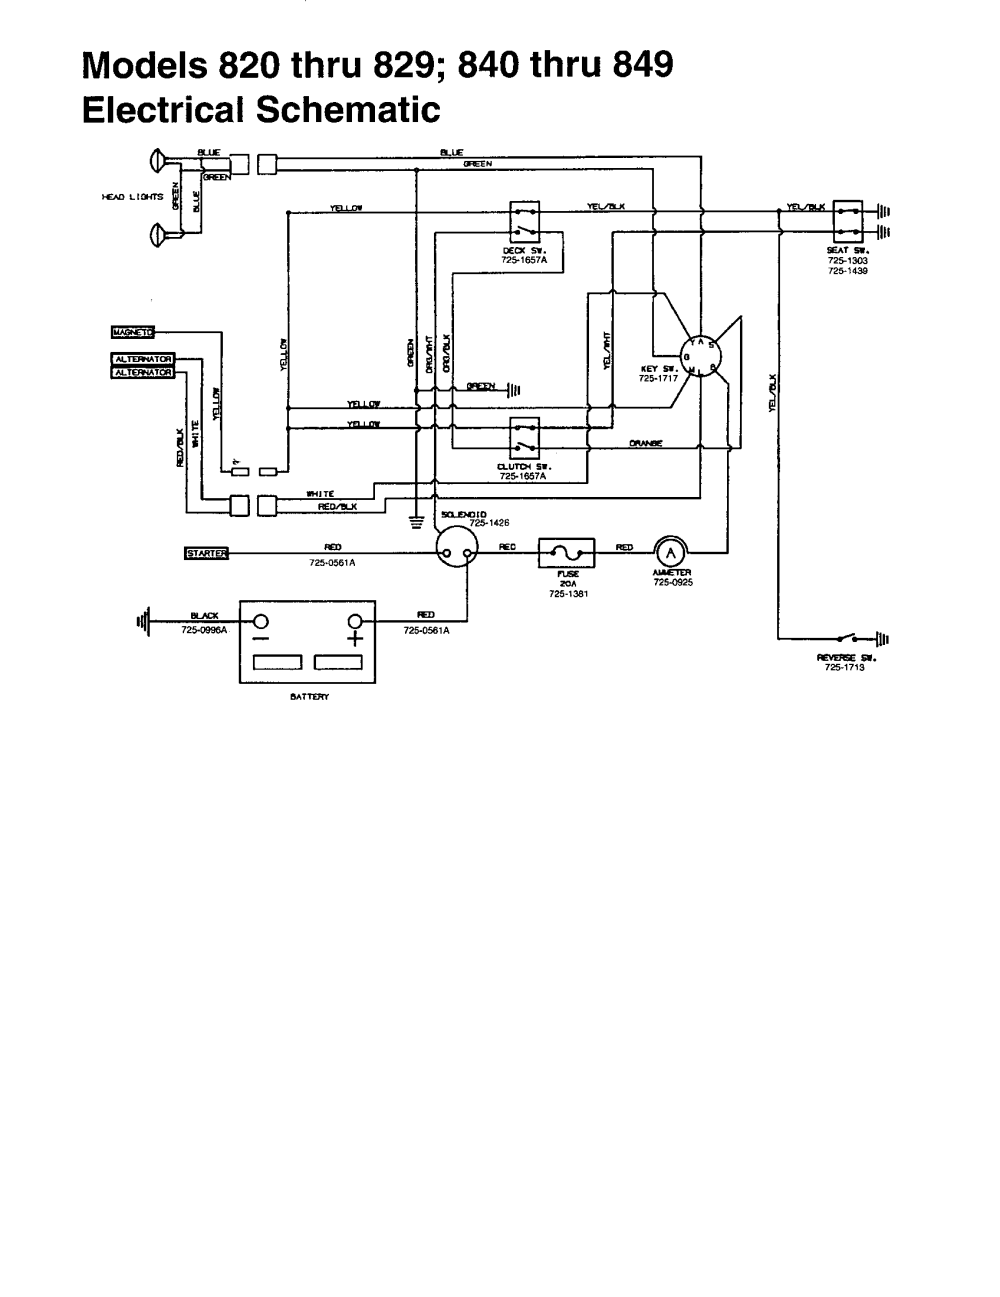 medium resolution of mtd 840 thru 849 electrical schematic diagram